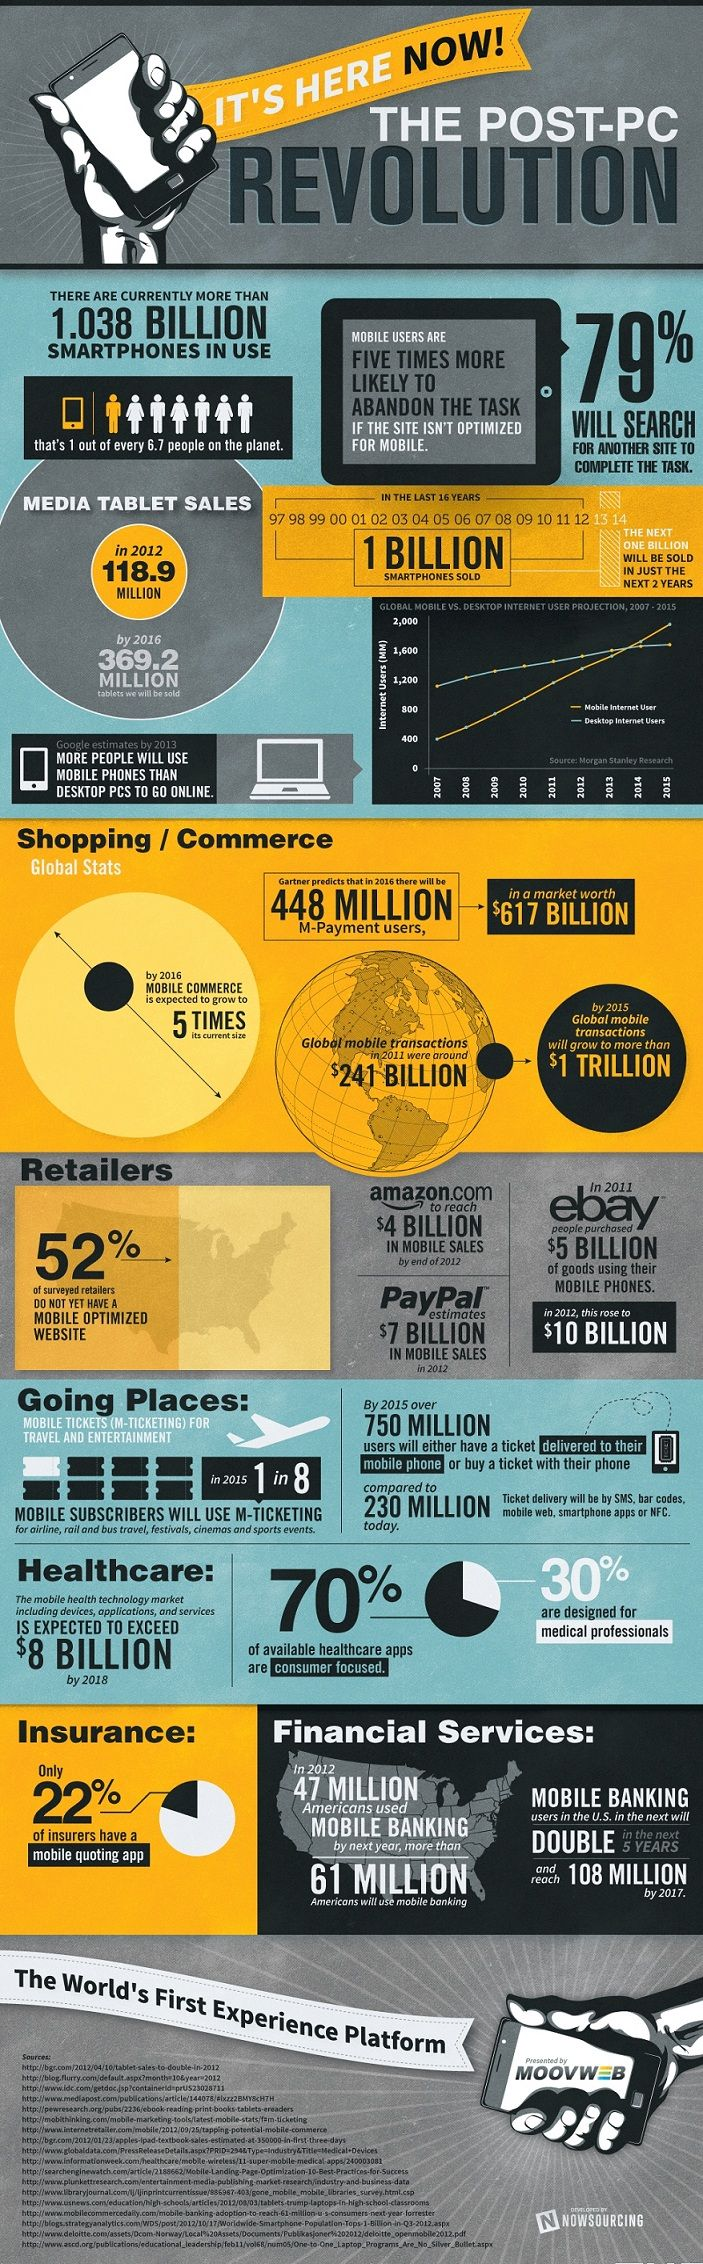 Mobile - The Post-PC Revolution [Infographic] : MarketingProfs Article